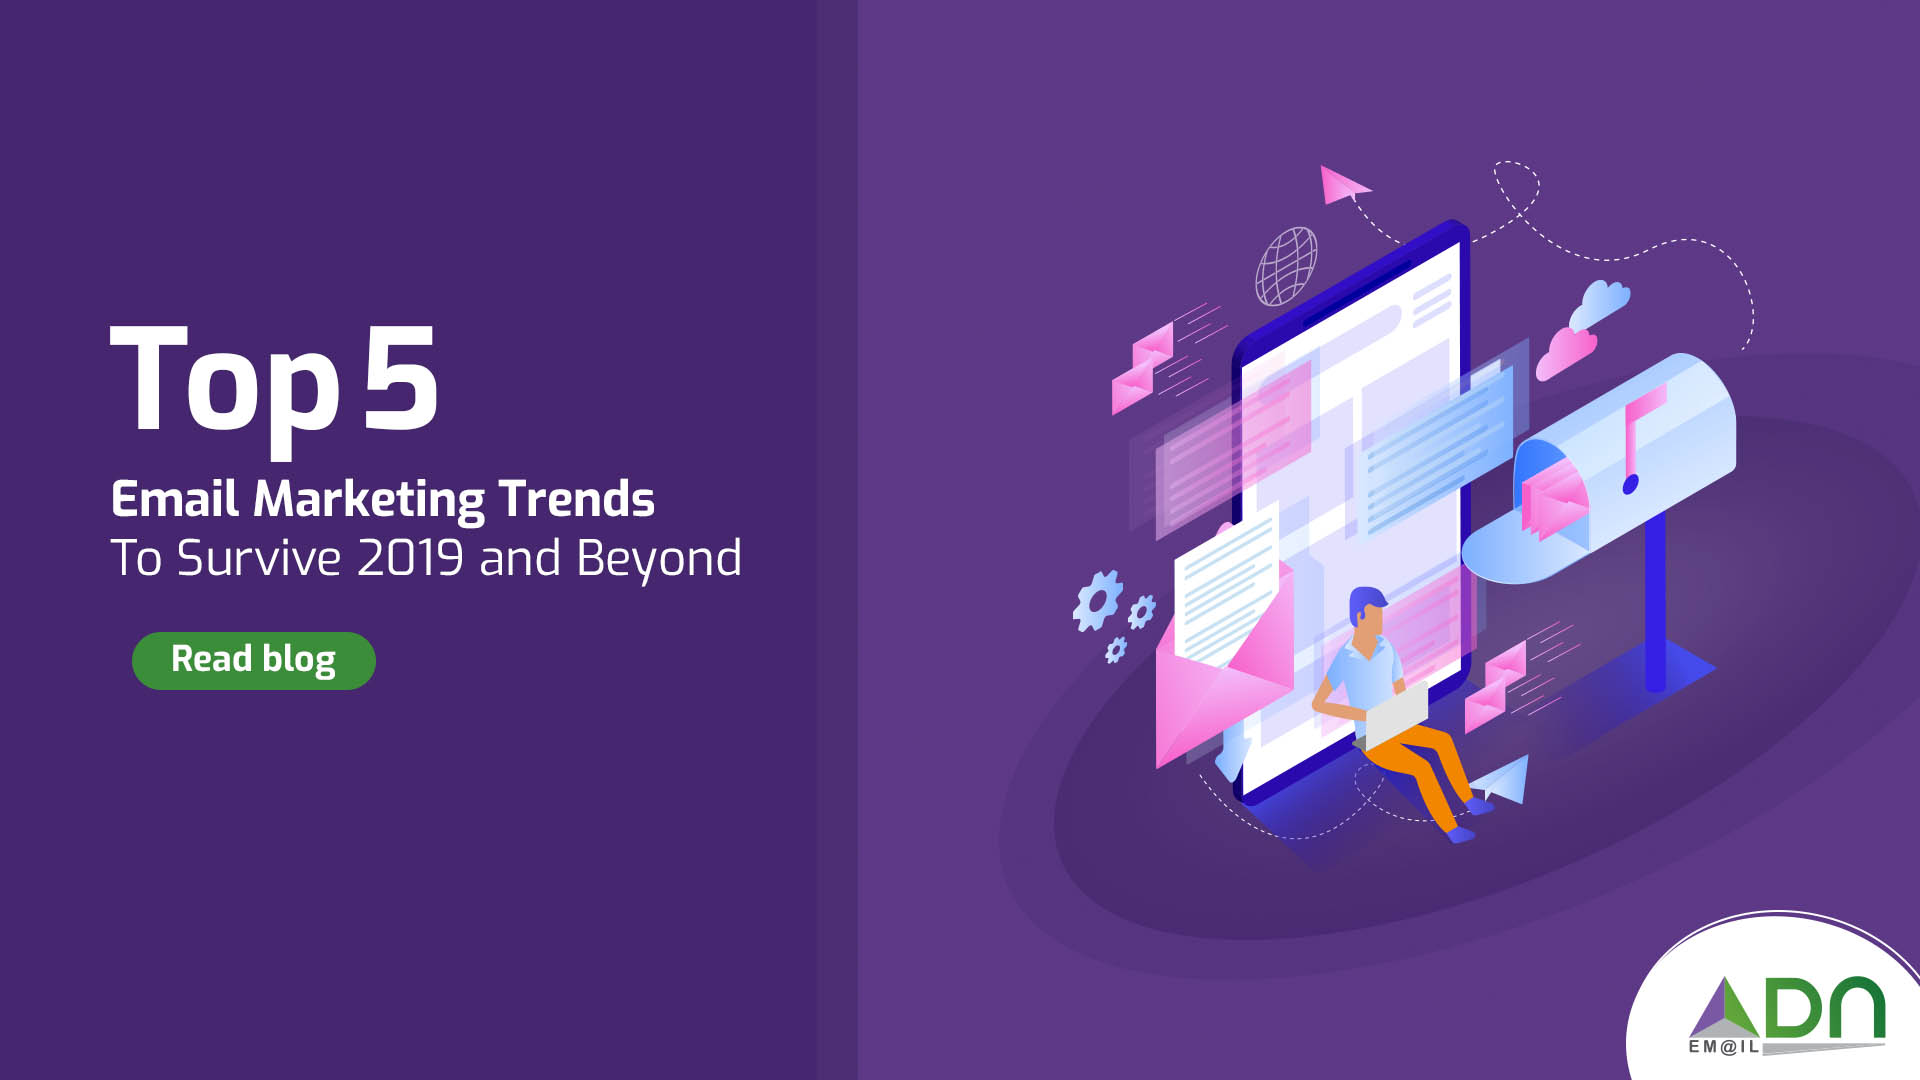 Top 5 Email Marketing Trends To Survive 2019 and Beyond - ADN Email